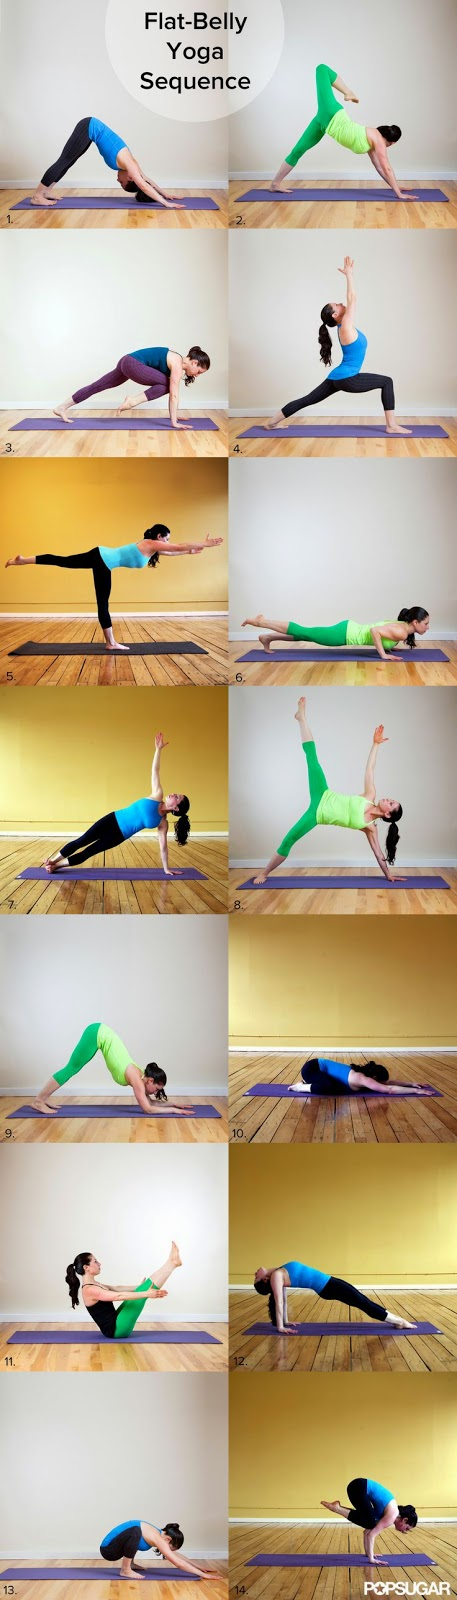 Source: www.PopSugar.com | Flat-Belly Yoga Sequence